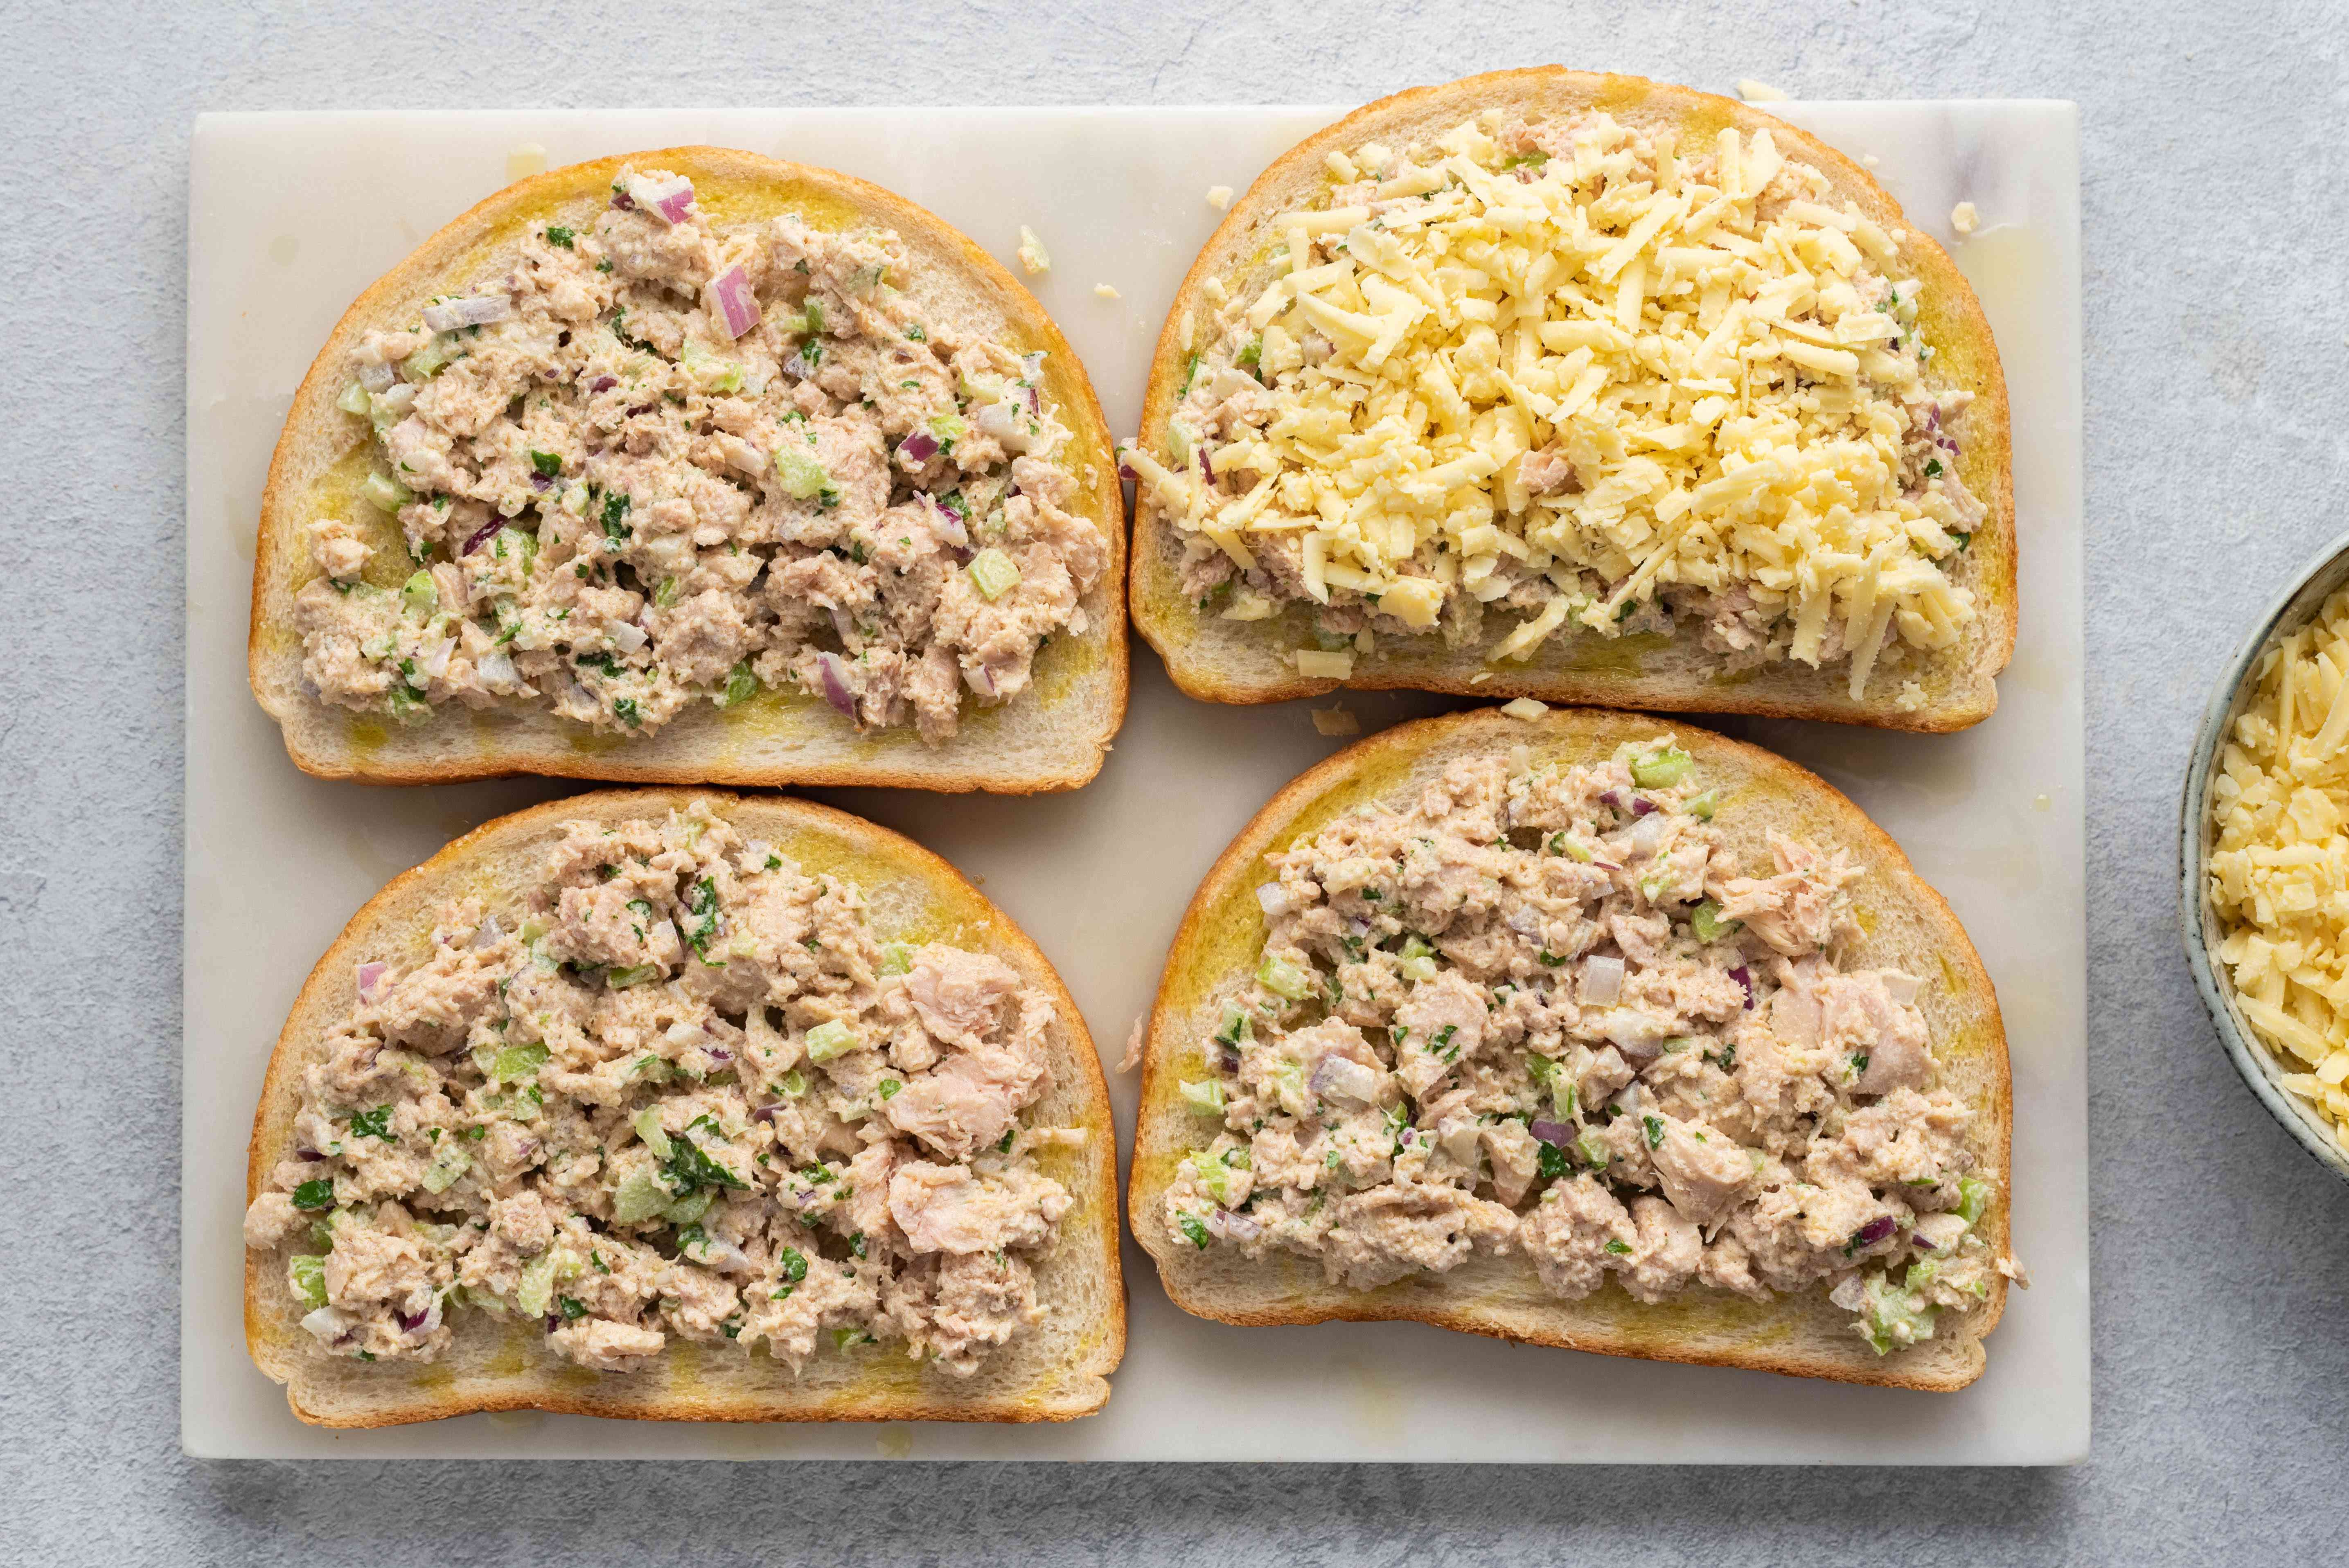 bread slices with a tuna mixture and cheese